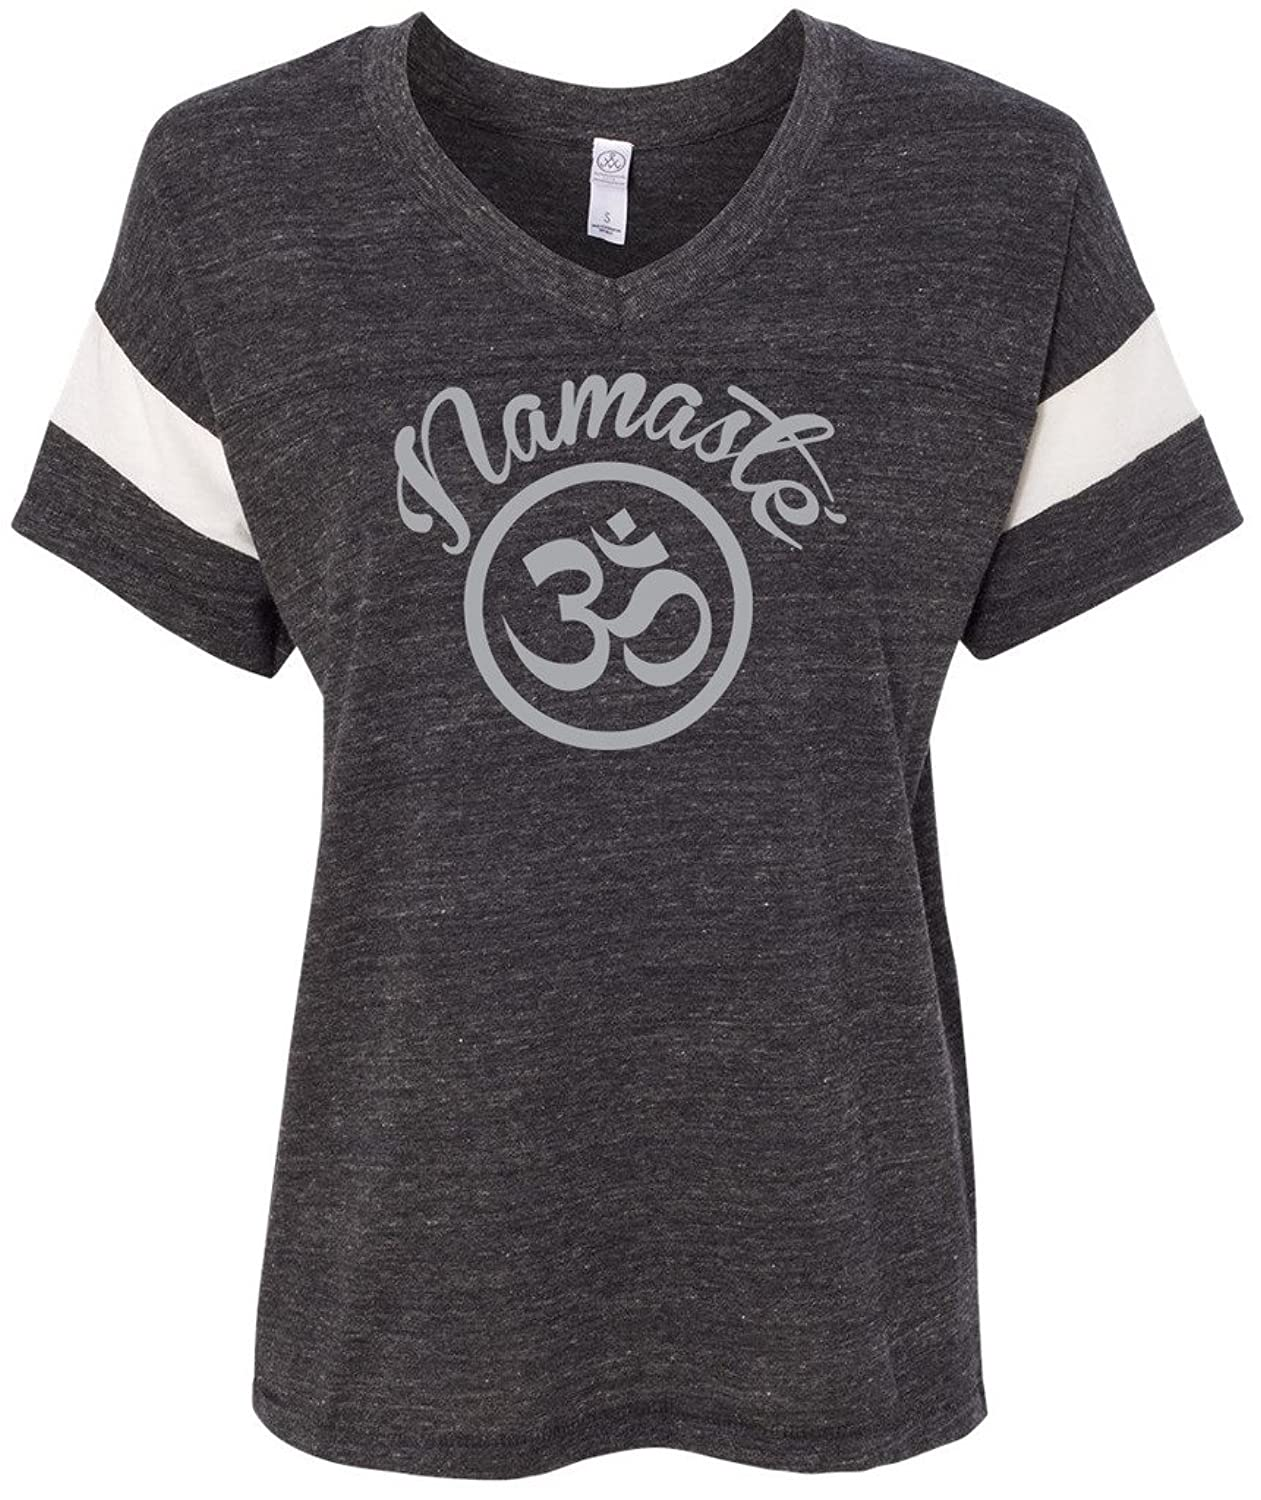 "Yoga Clothing For You Ladies ""Namaste Om"" Eco Blended V-neck"